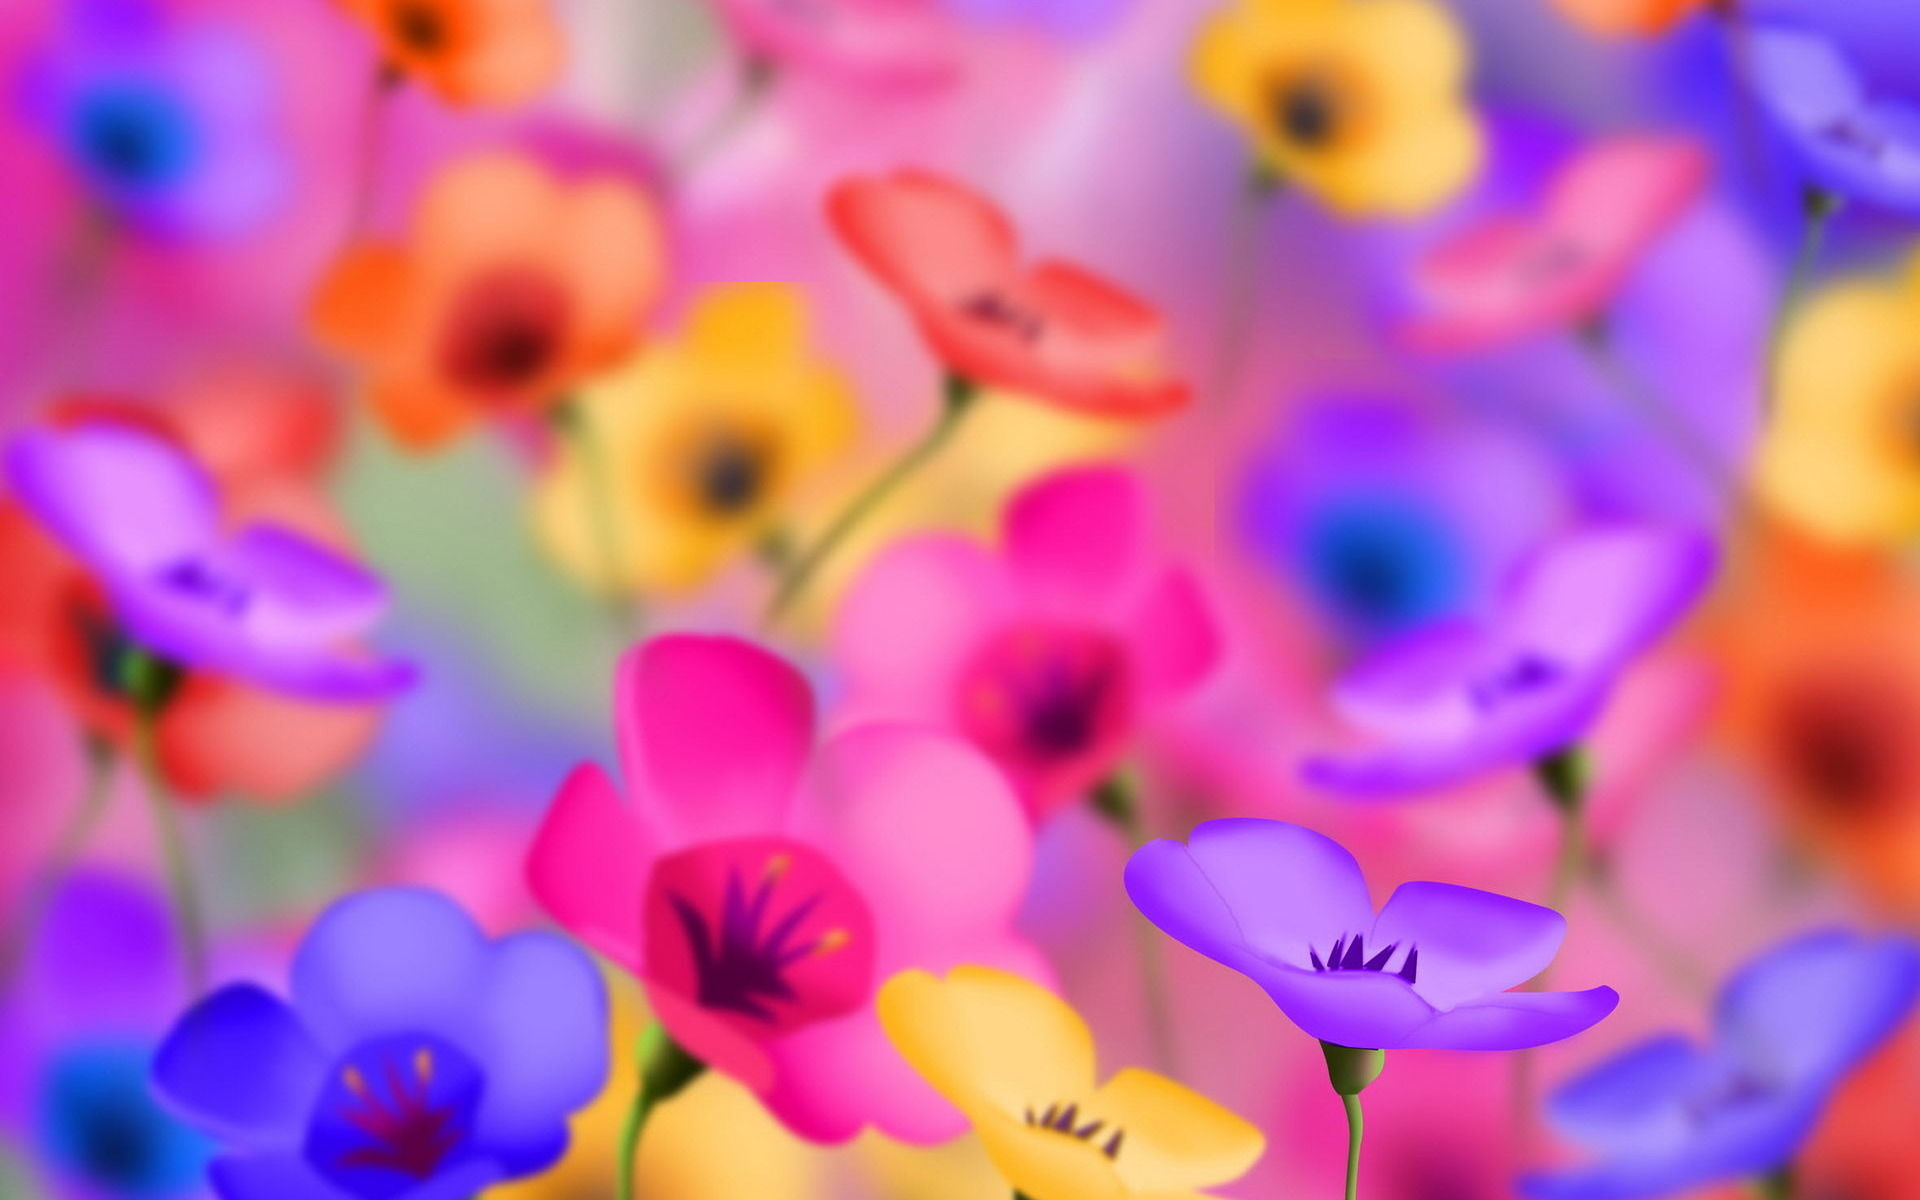 Wallpapers Desktop Wallpapers Backgrounds Nature Flowers Bright 1920x1200